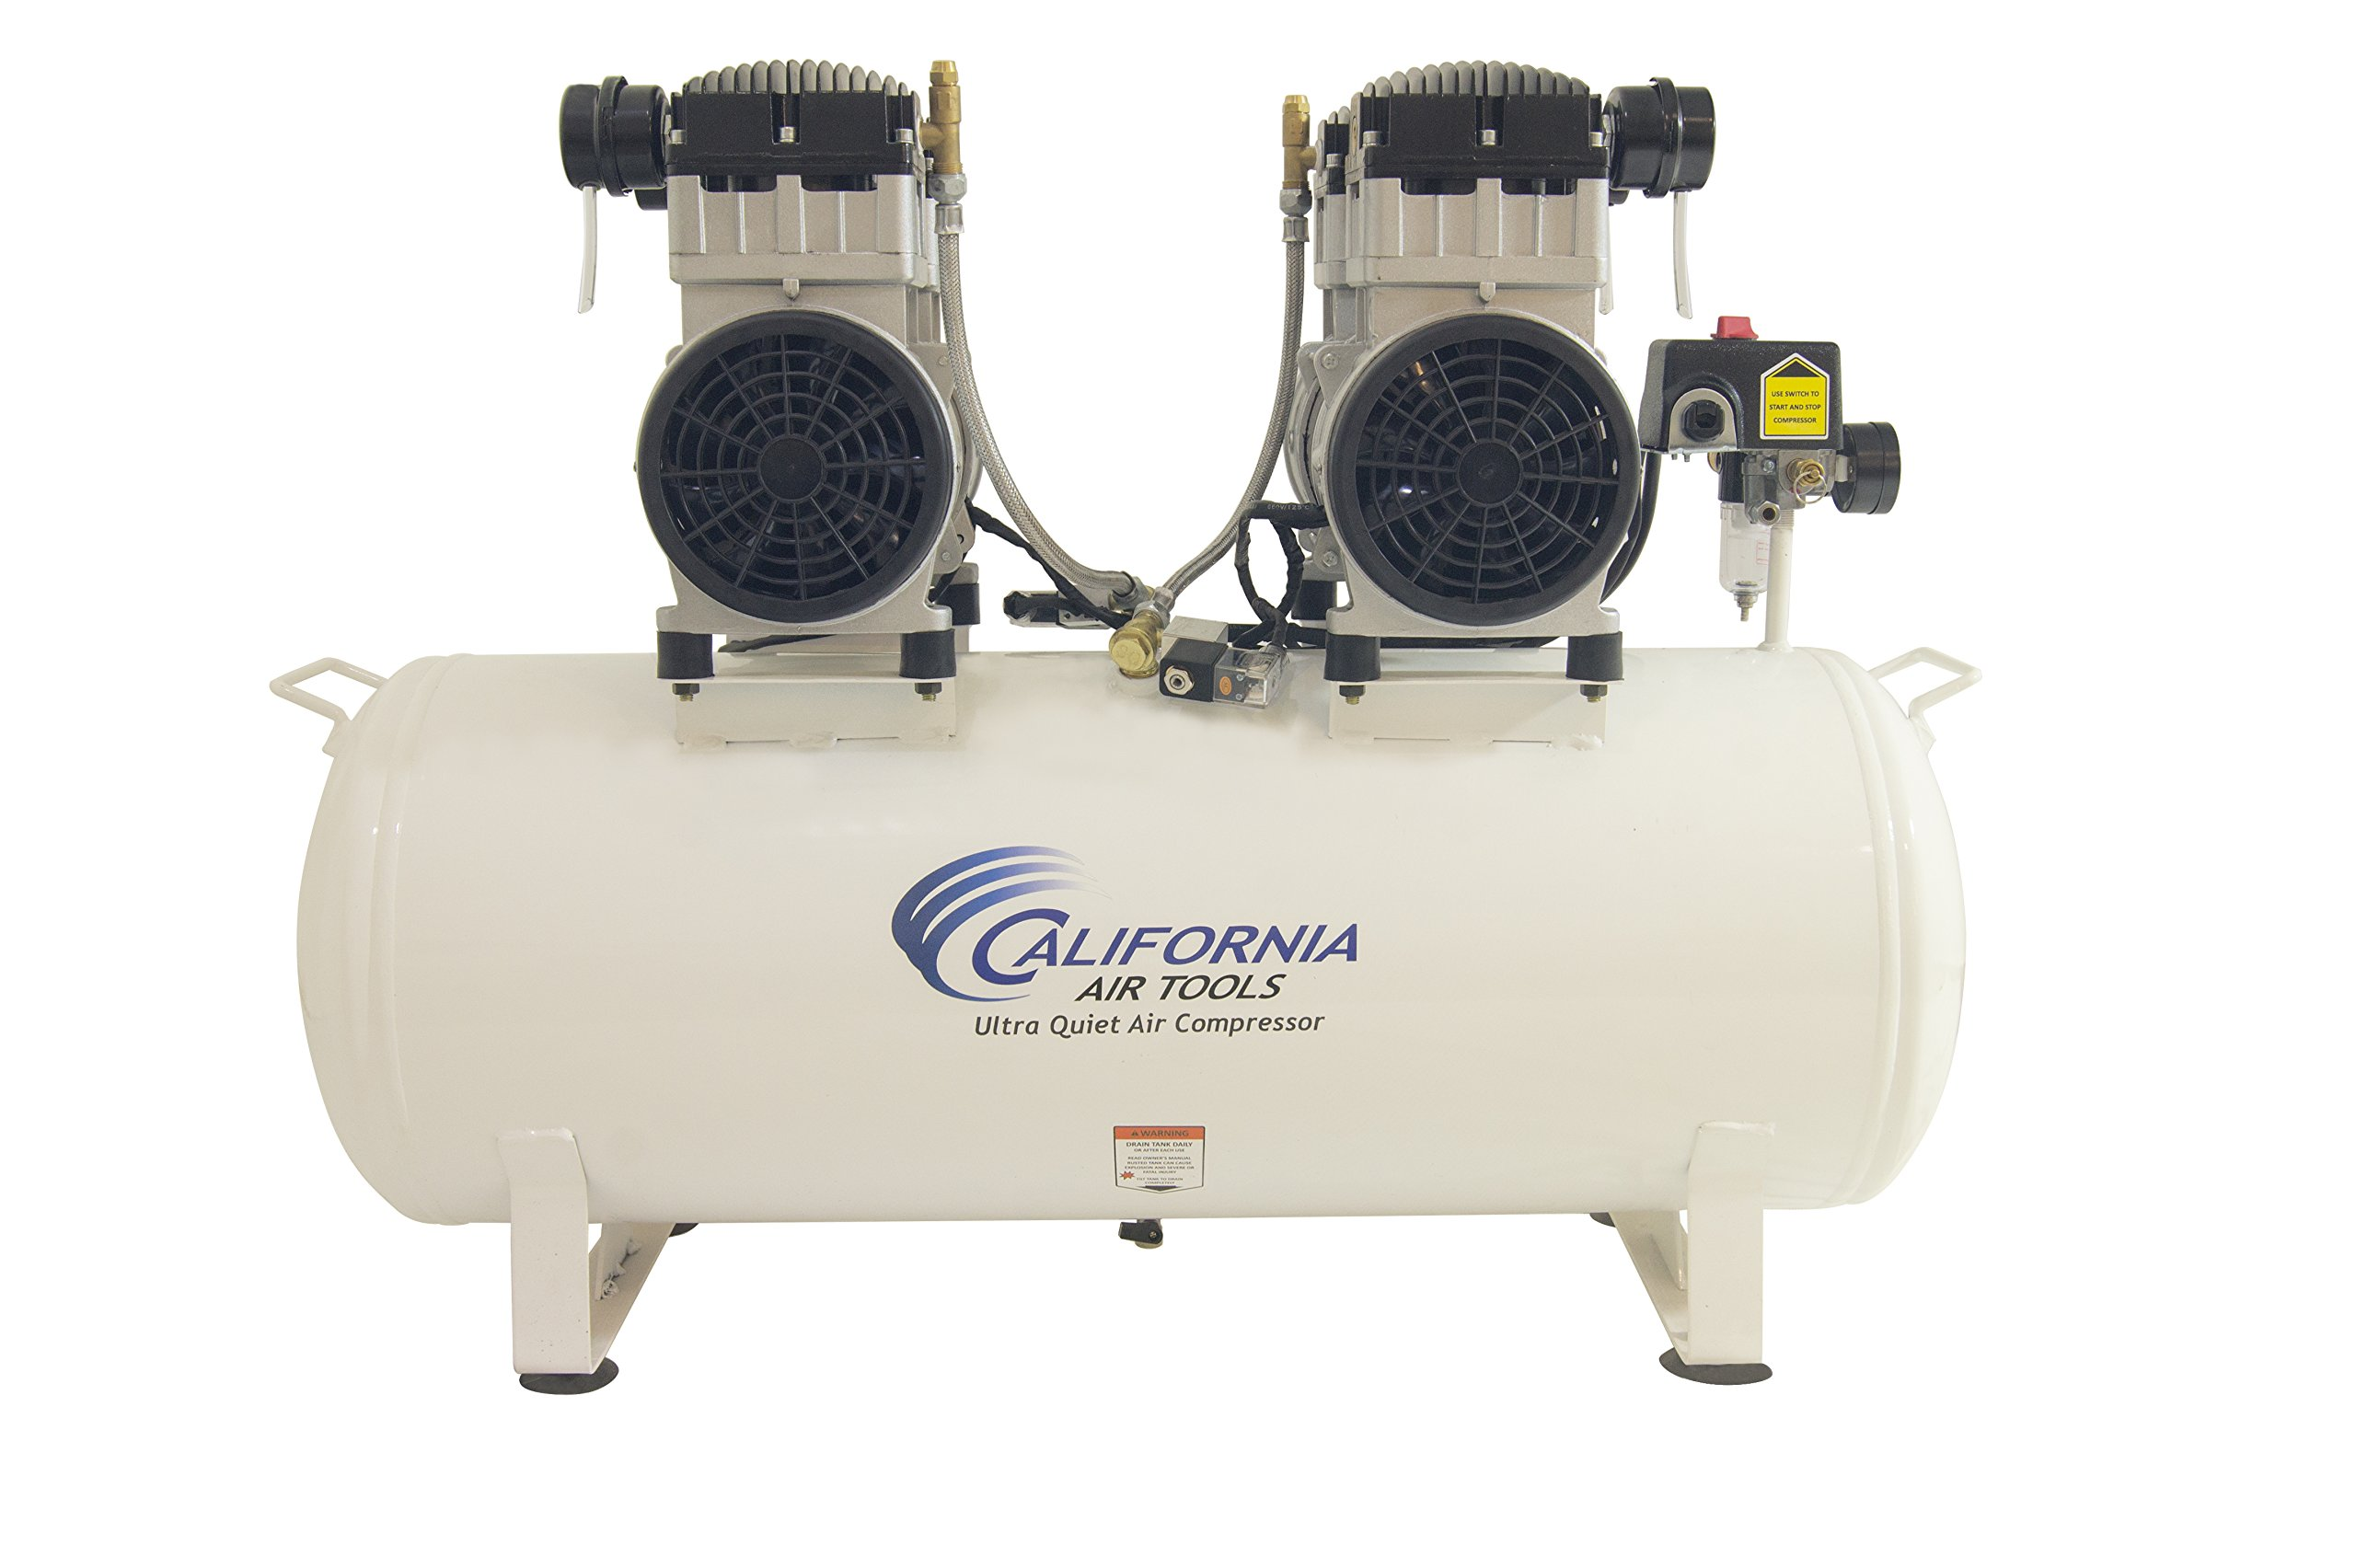 California Air Tools 20040CAD 4 hp 20 gallon Ultra Quiet & Oil-Free Steel Tank Air Compressor Auto Drain, White